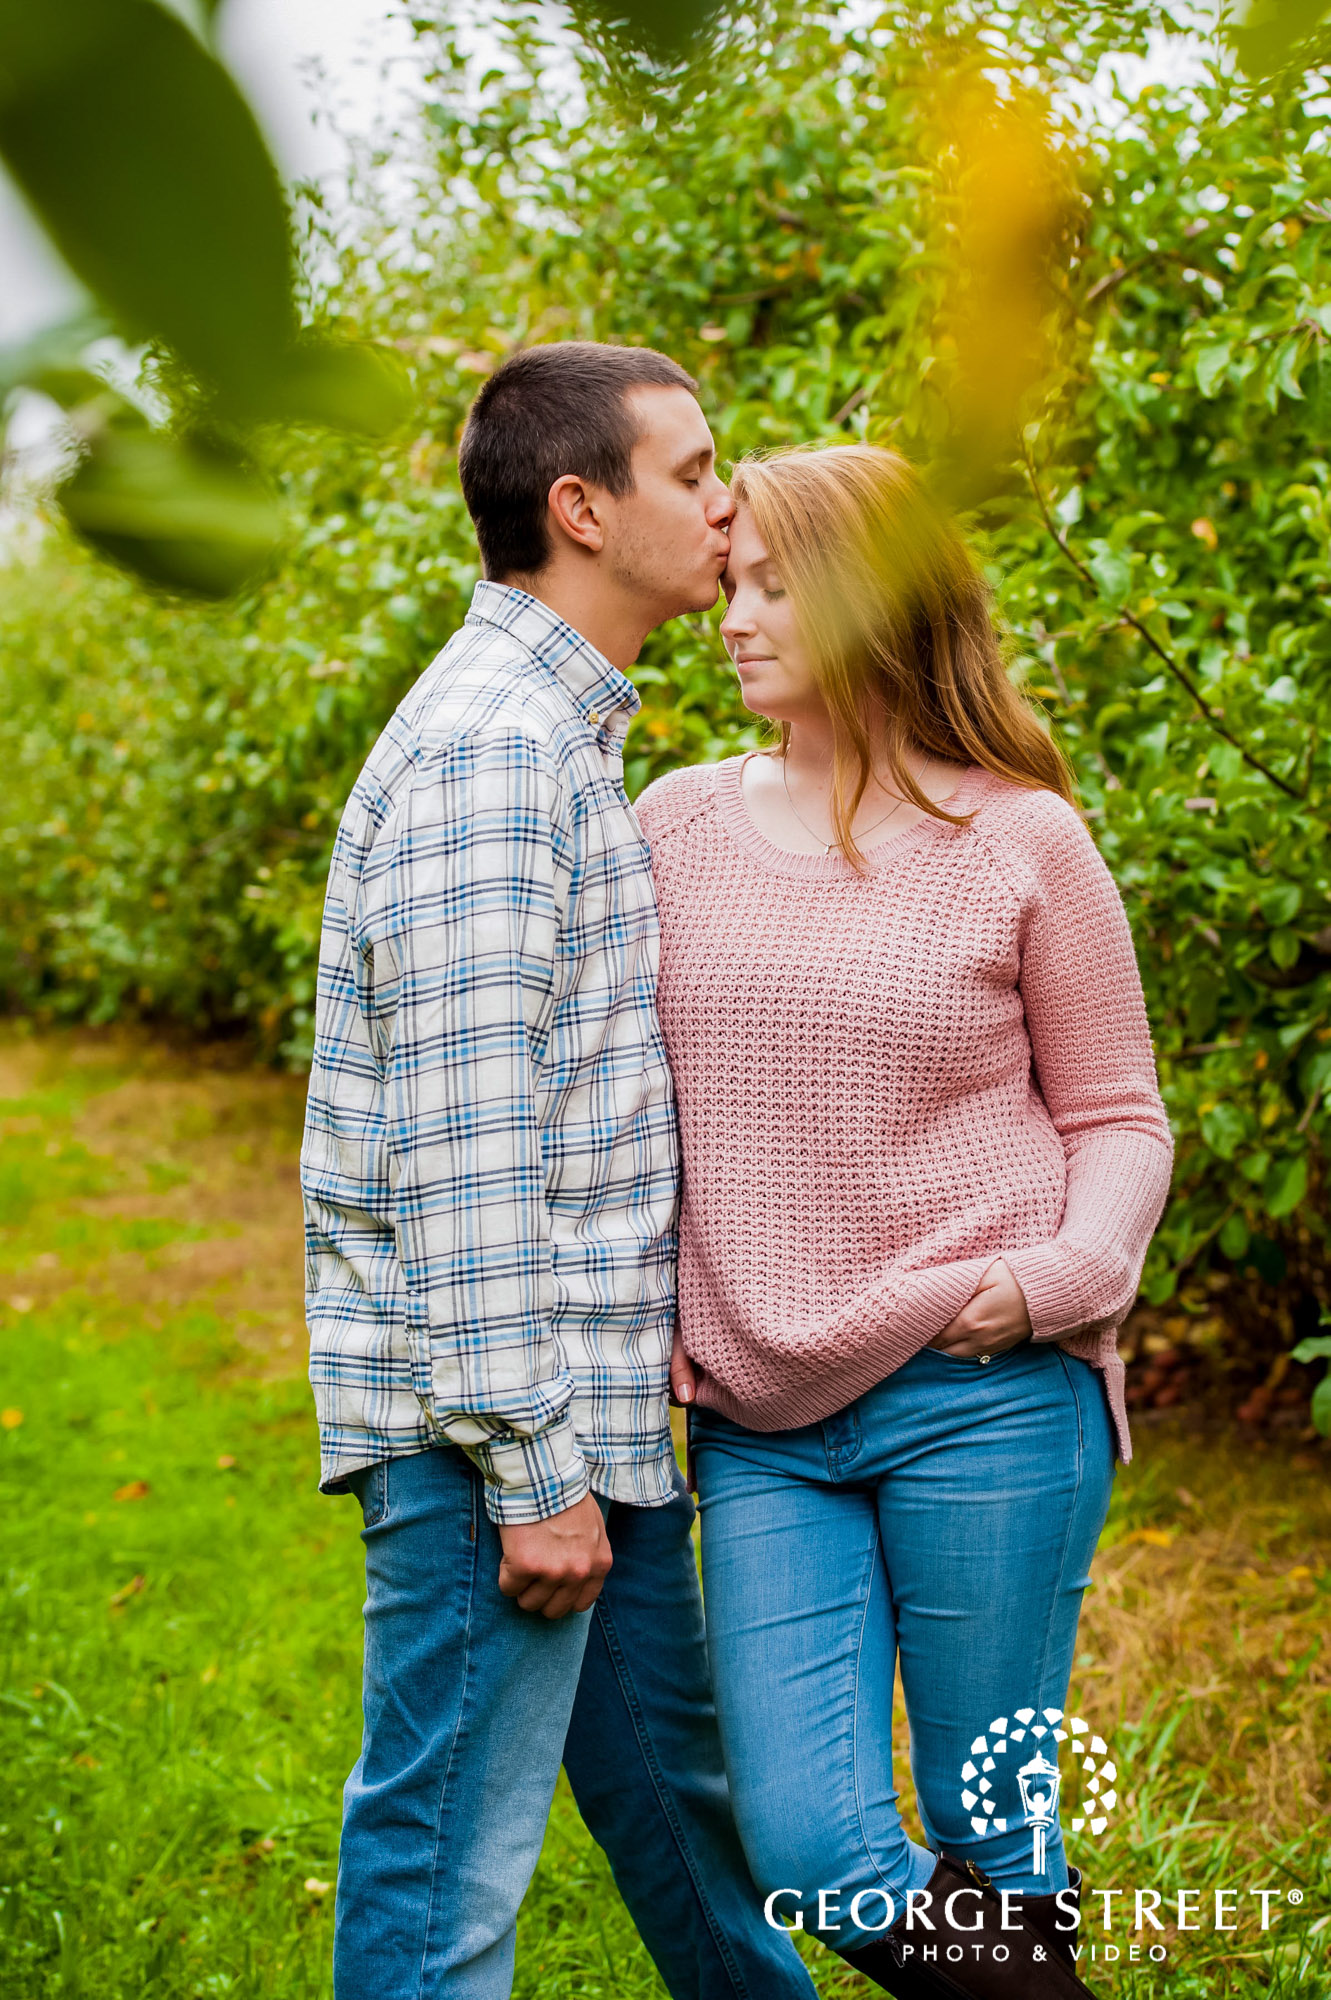 lyman orchards cute greenery sweater hartford engagement photography 10